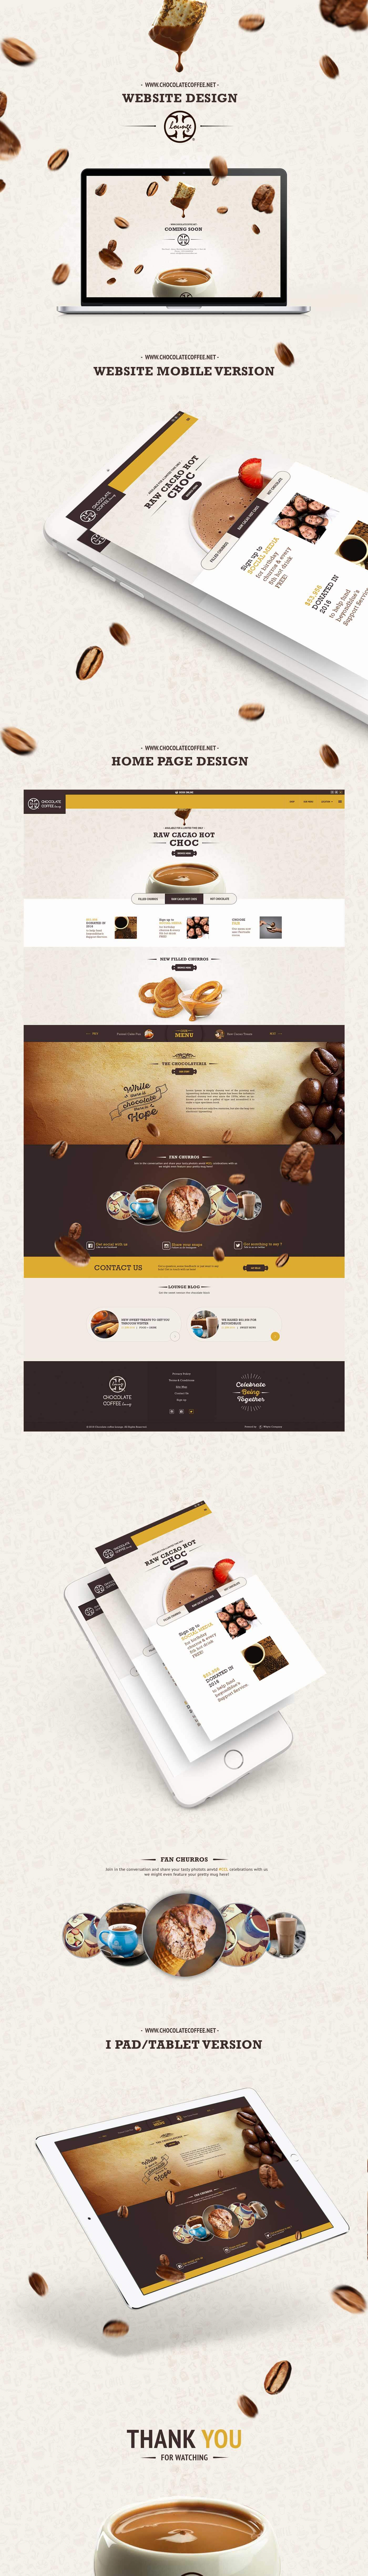 Chocolate Coffee Lounge's website design and development by Whyte Company